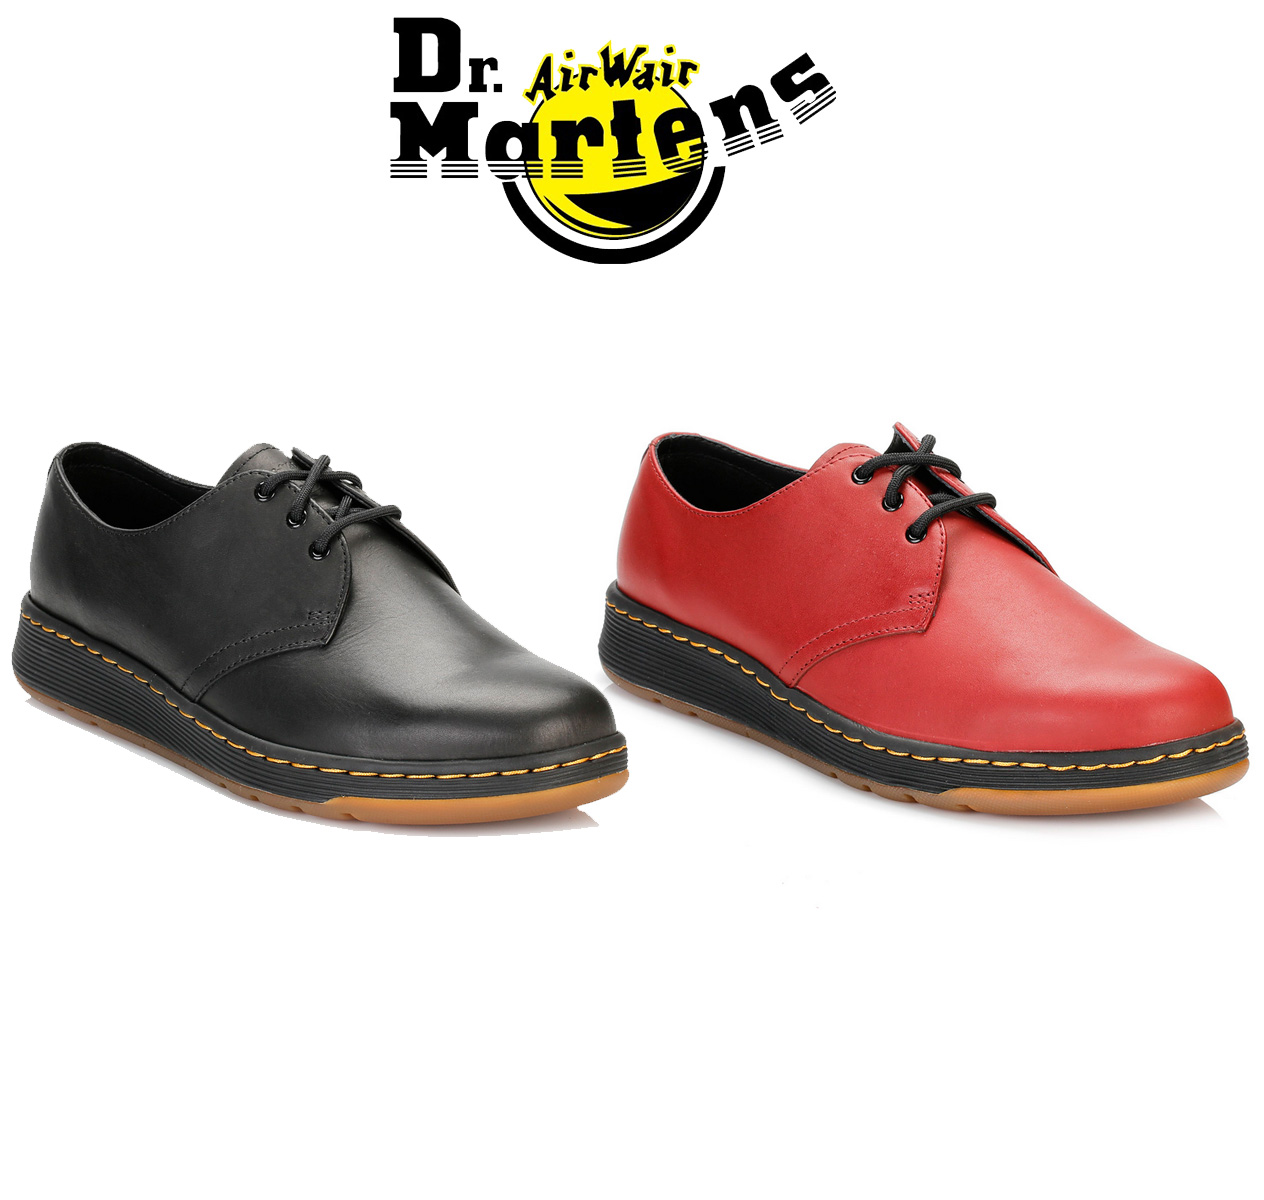 205cc9d41ae ... soft premium leather upper and durable sole that is the hall mark of  all Dr Martens shoes as well as being light weight